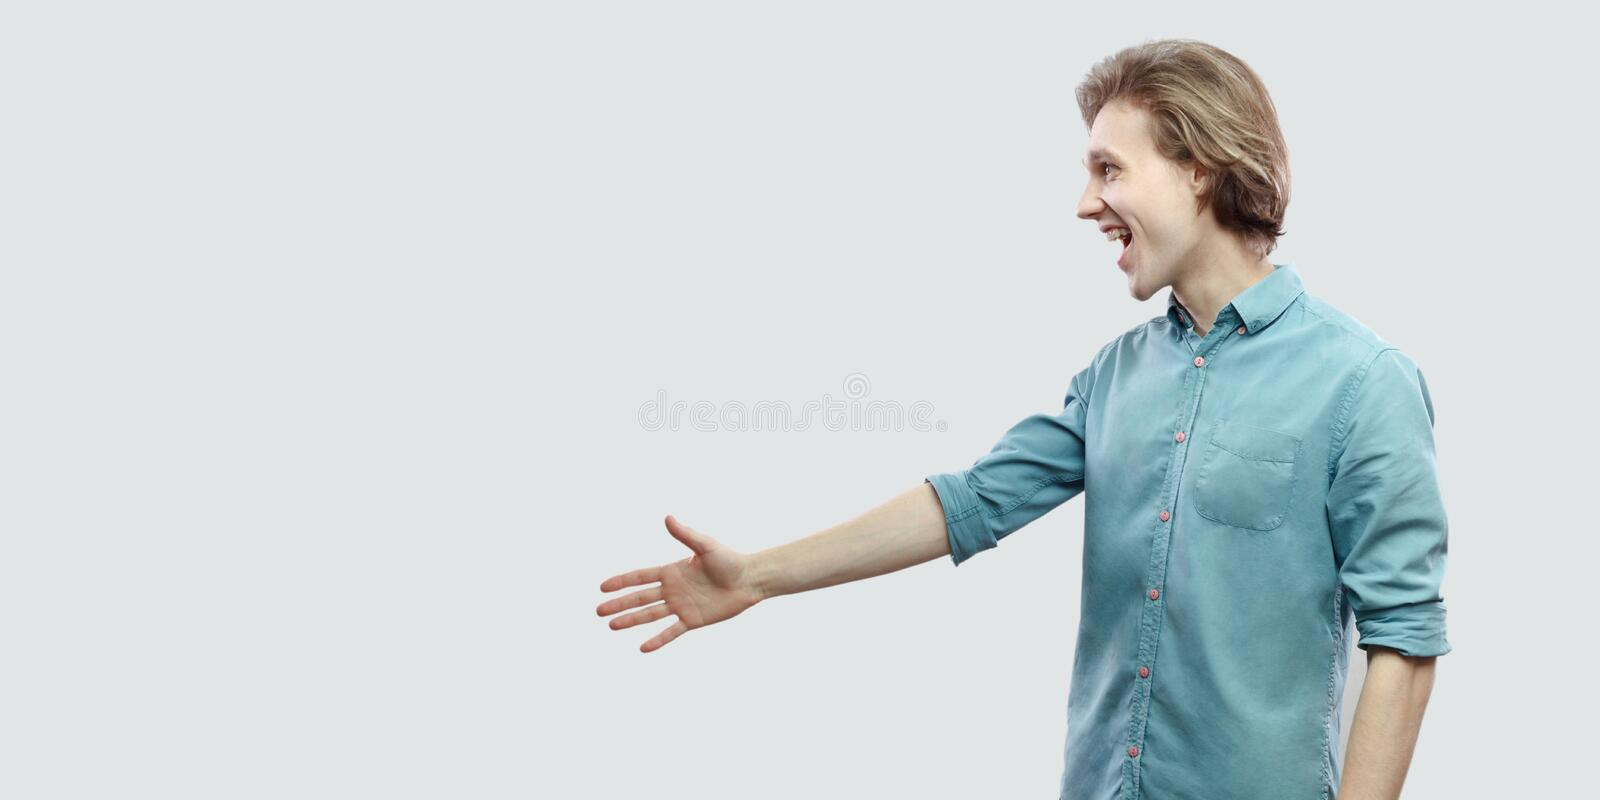 Profile side view portrait of excited happy handsome long haired blonde young man in blue casual shirt standing and giving hand ot stock photos